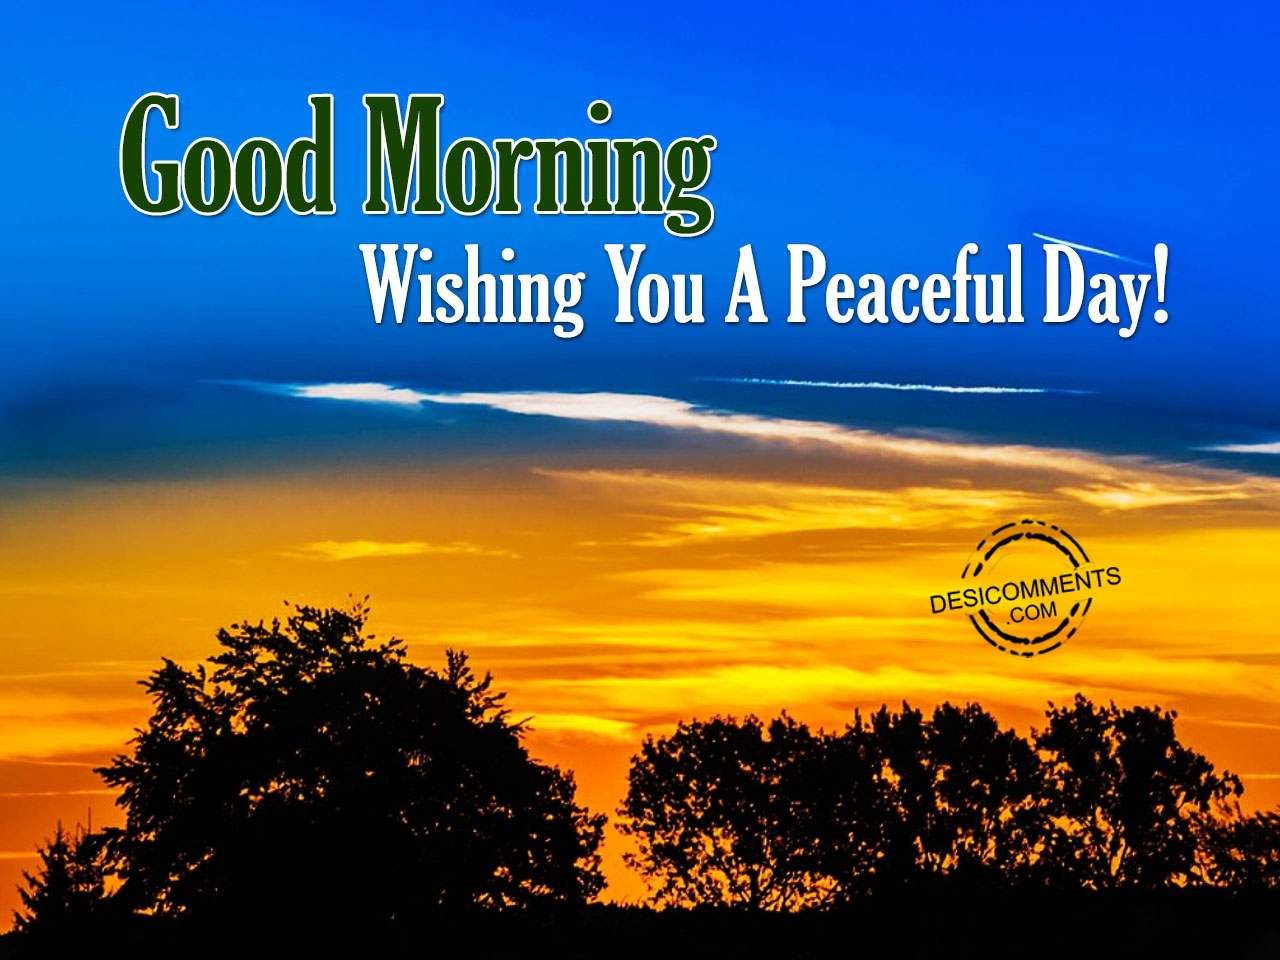 Good Morning - Wishing You A Happy Day - DesiComments.com